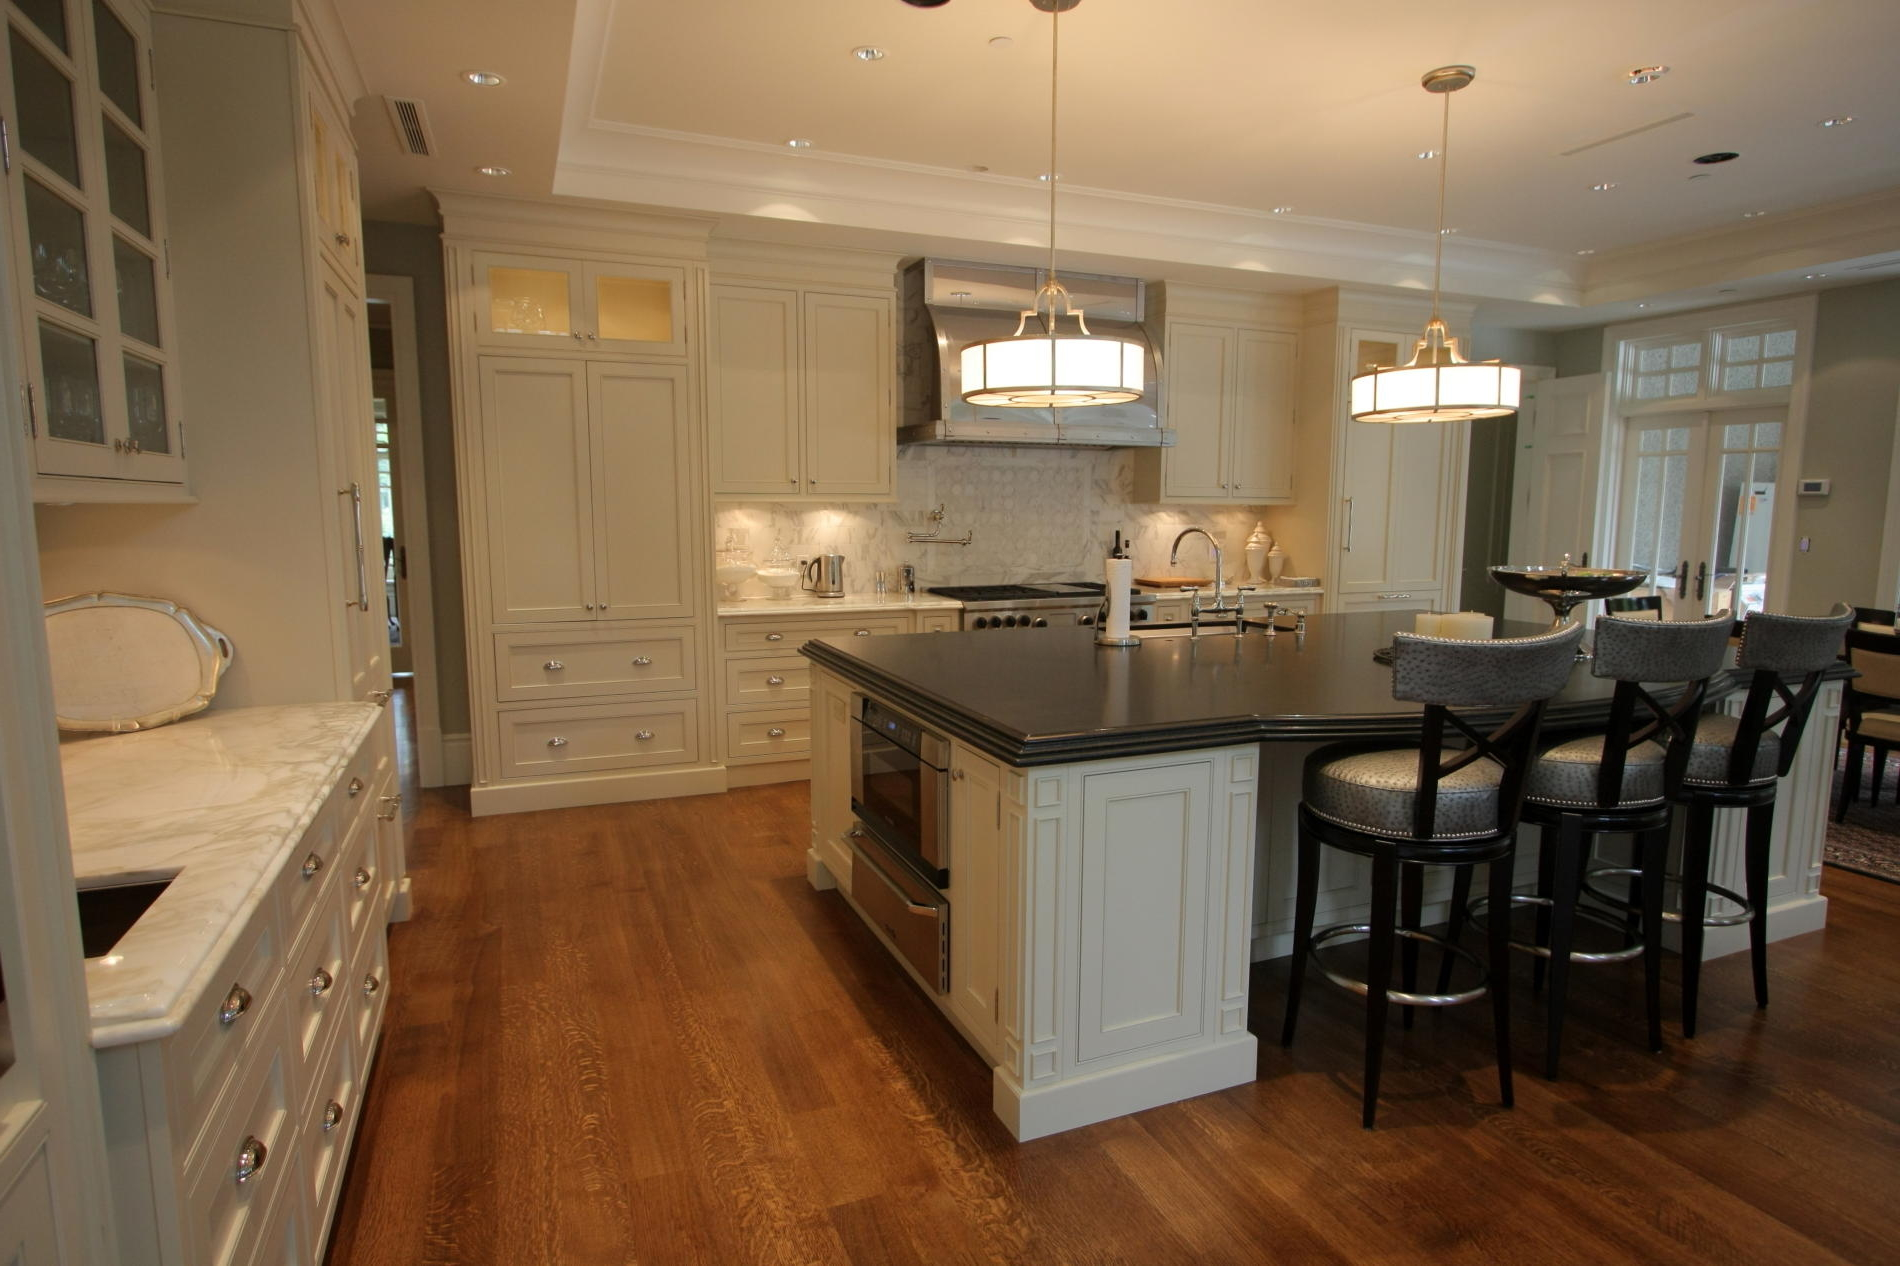 Classic Victorian Kitchen With Natural Color (Image 1 of 8)